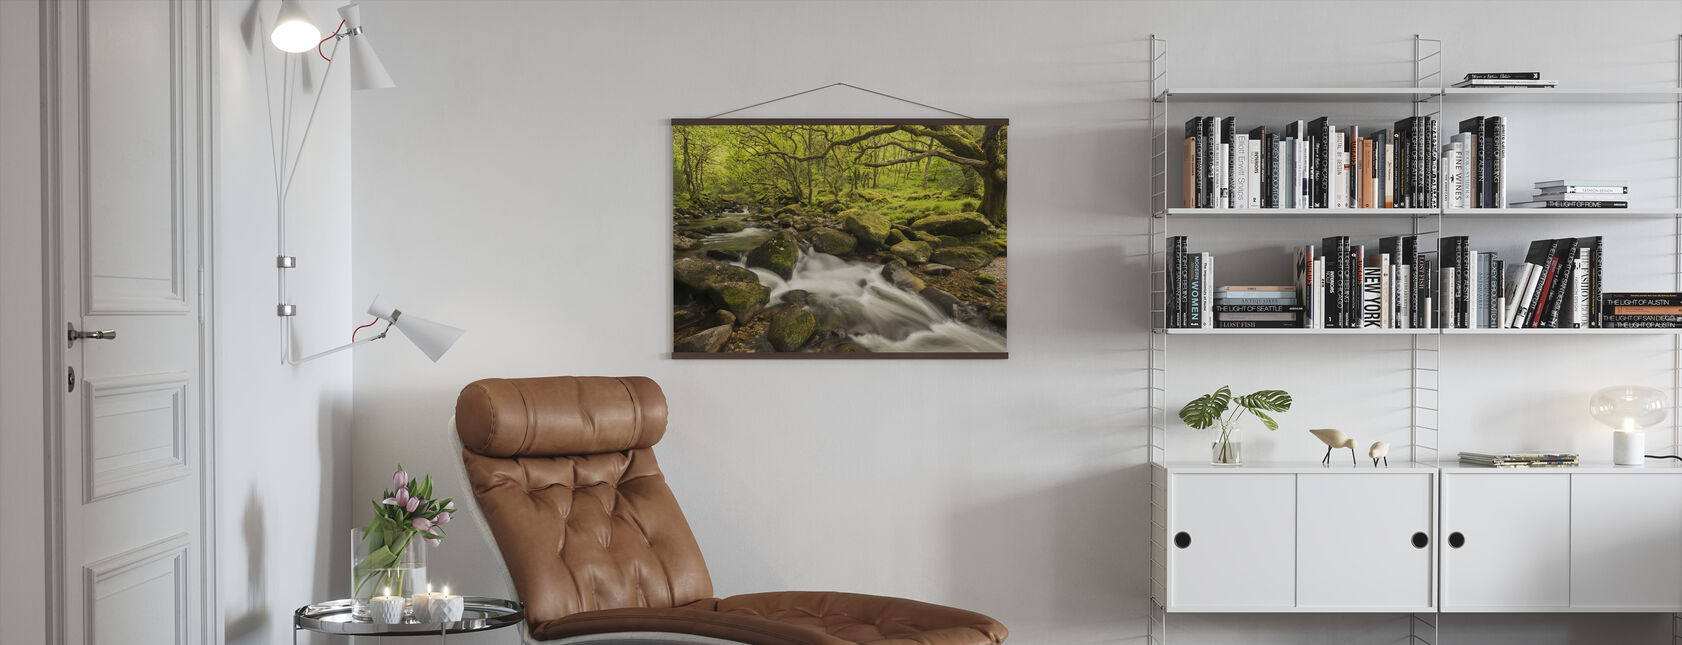 River Plym in Dewerstone Wood, Devon, England, UK - Poster - Living Room